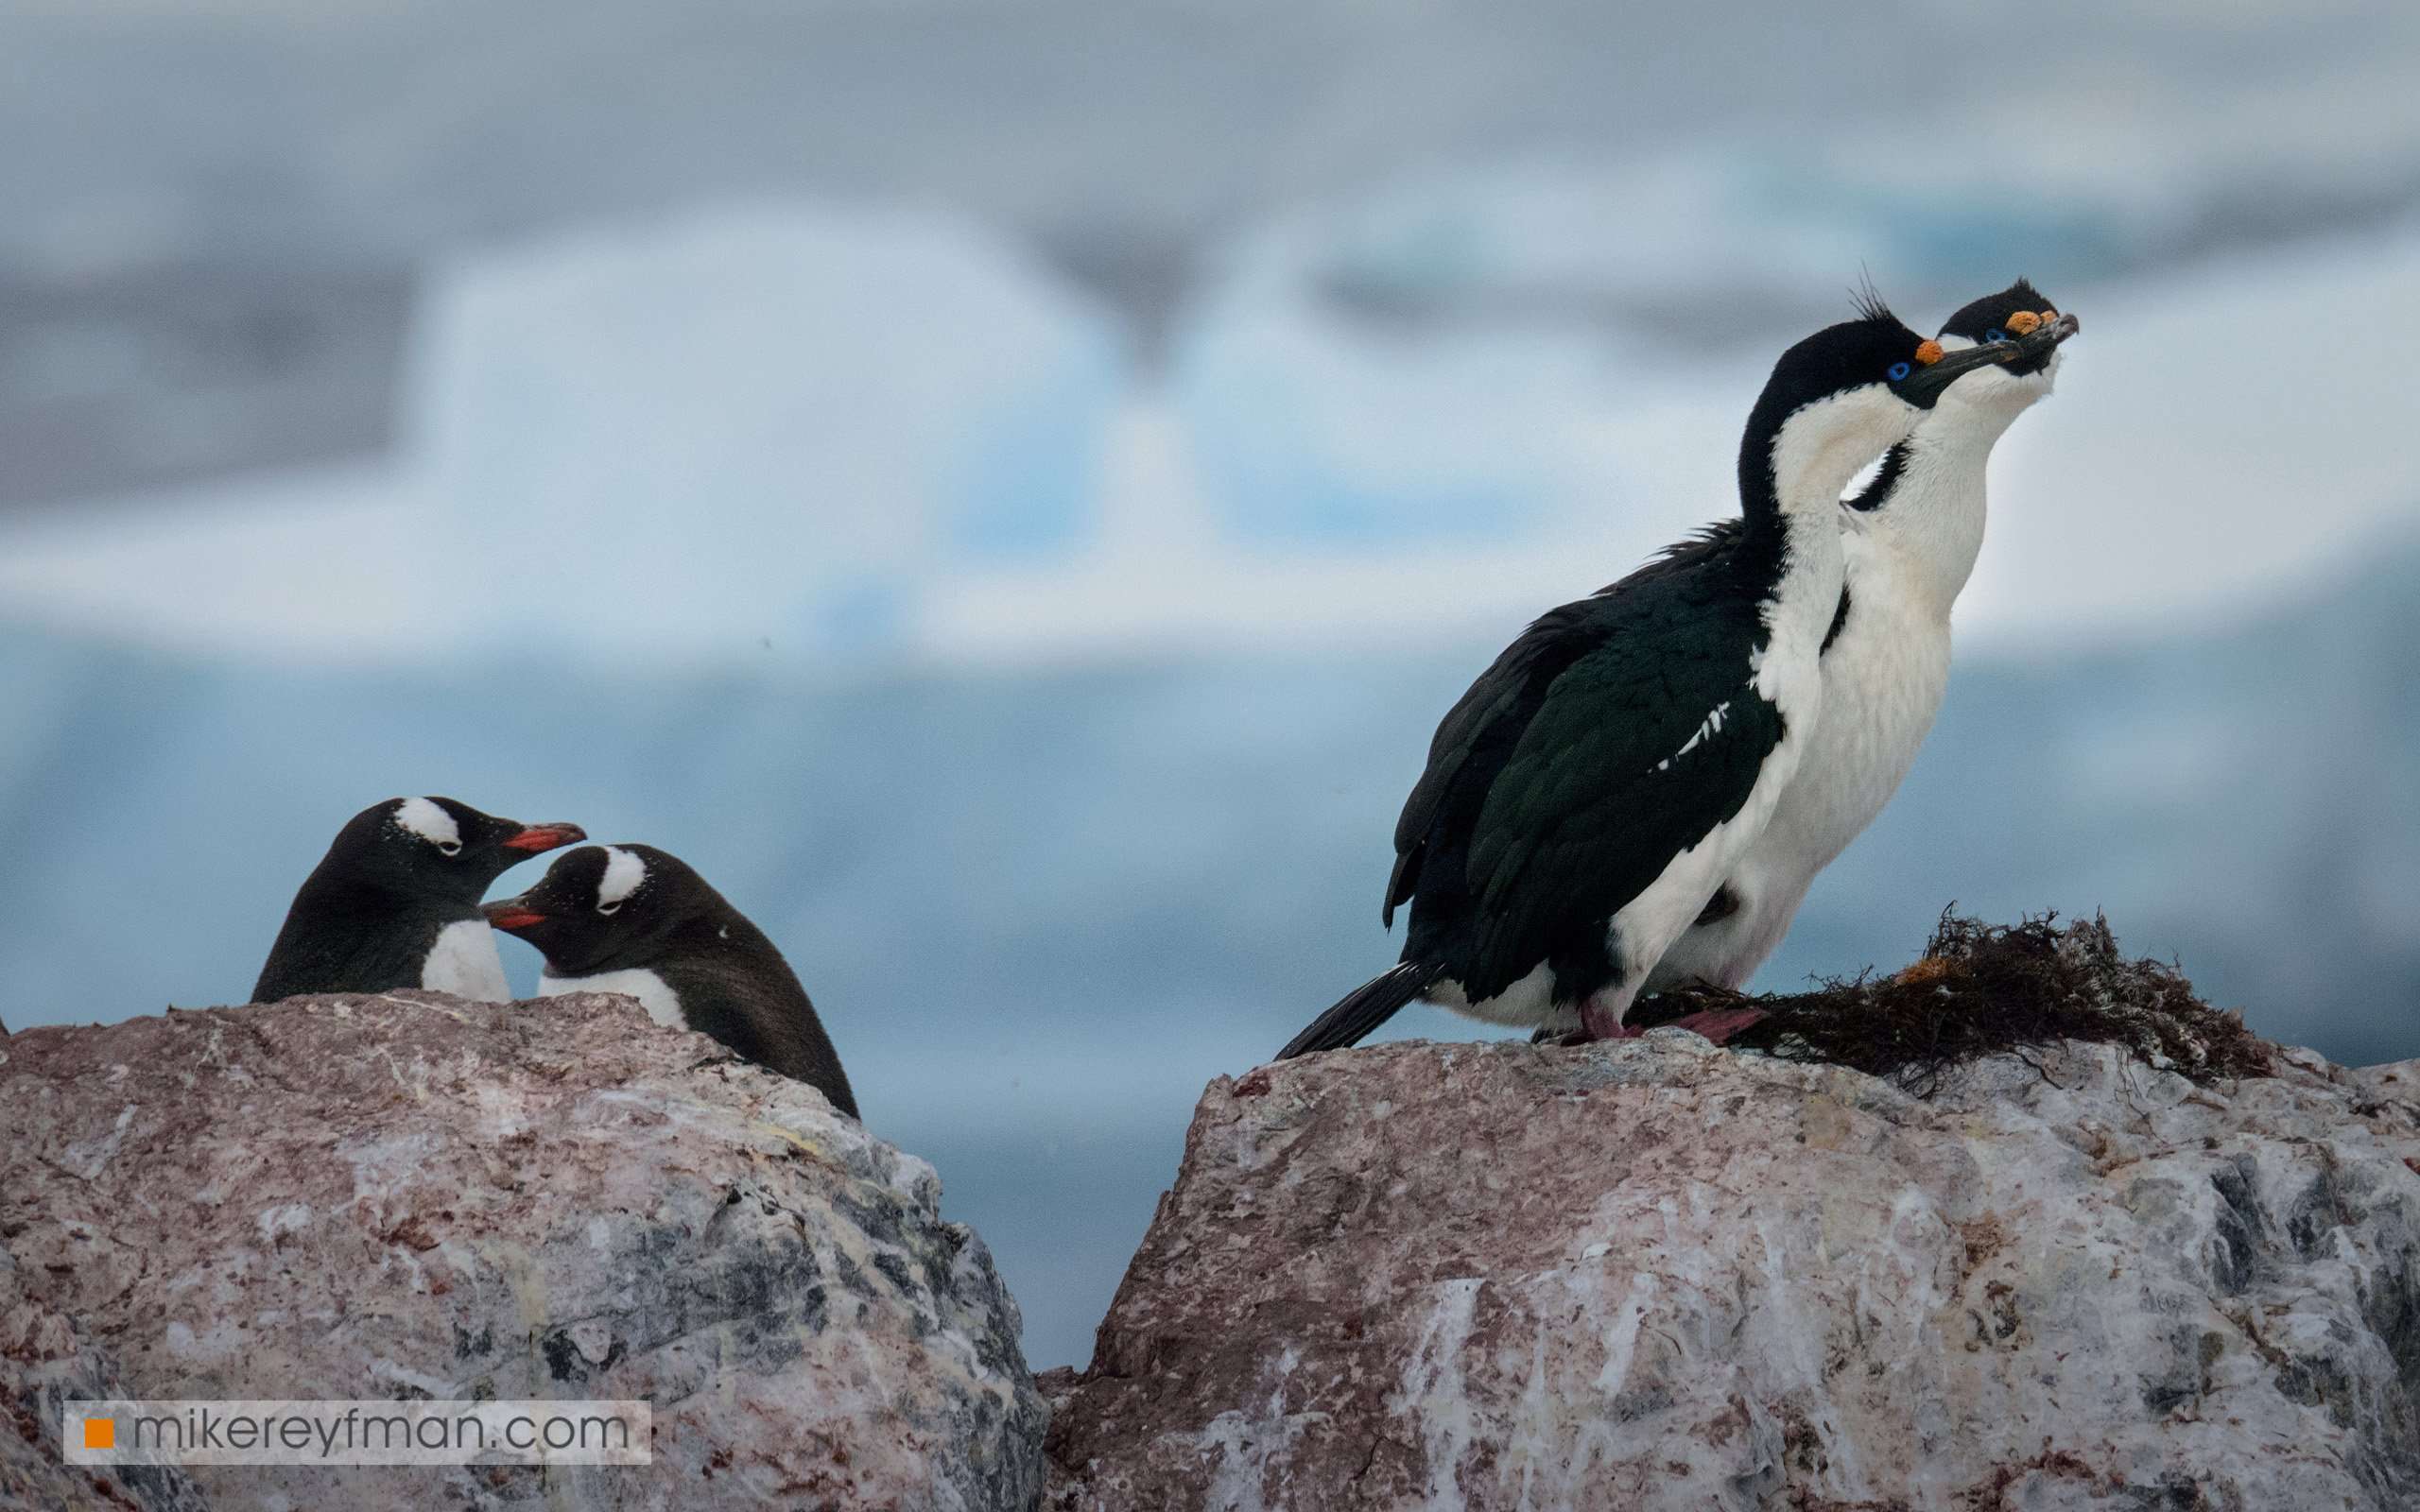 cuverville island, blue-eyed shag, dramatic, polar climate, antarctic, antarctica, cold, romantic, extreme, gentoo penguin, chinstrap penguin, Майк Рейфман